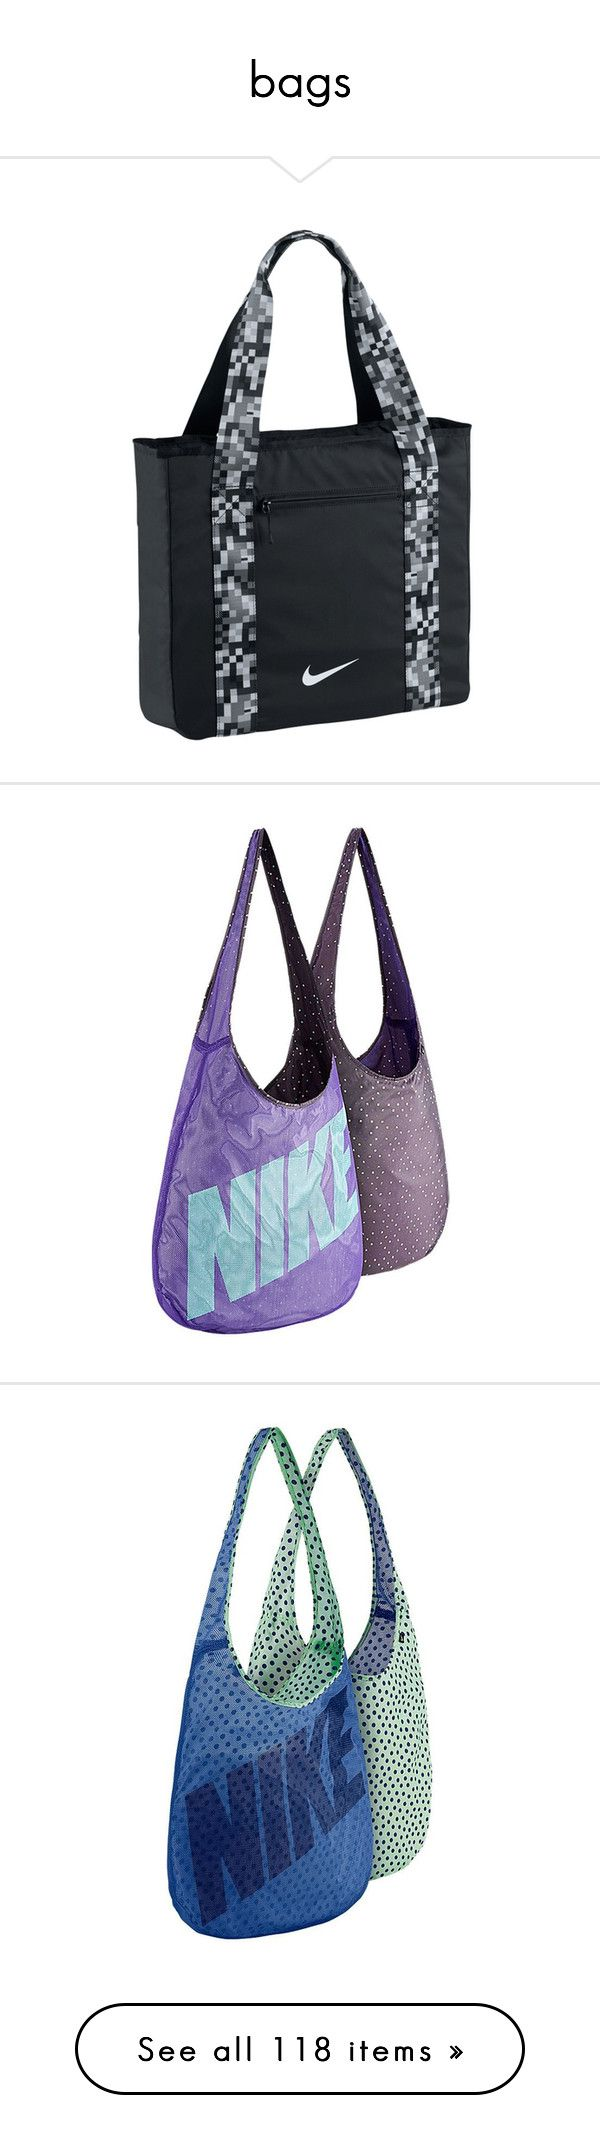 """""""bags"""" by welcometoweirdschool on Polyvore featuring bags, handbags, tote bags, nike tote, nike handbags, embellished handbags, nike, nike tote bag, shoulder bags and purple"""